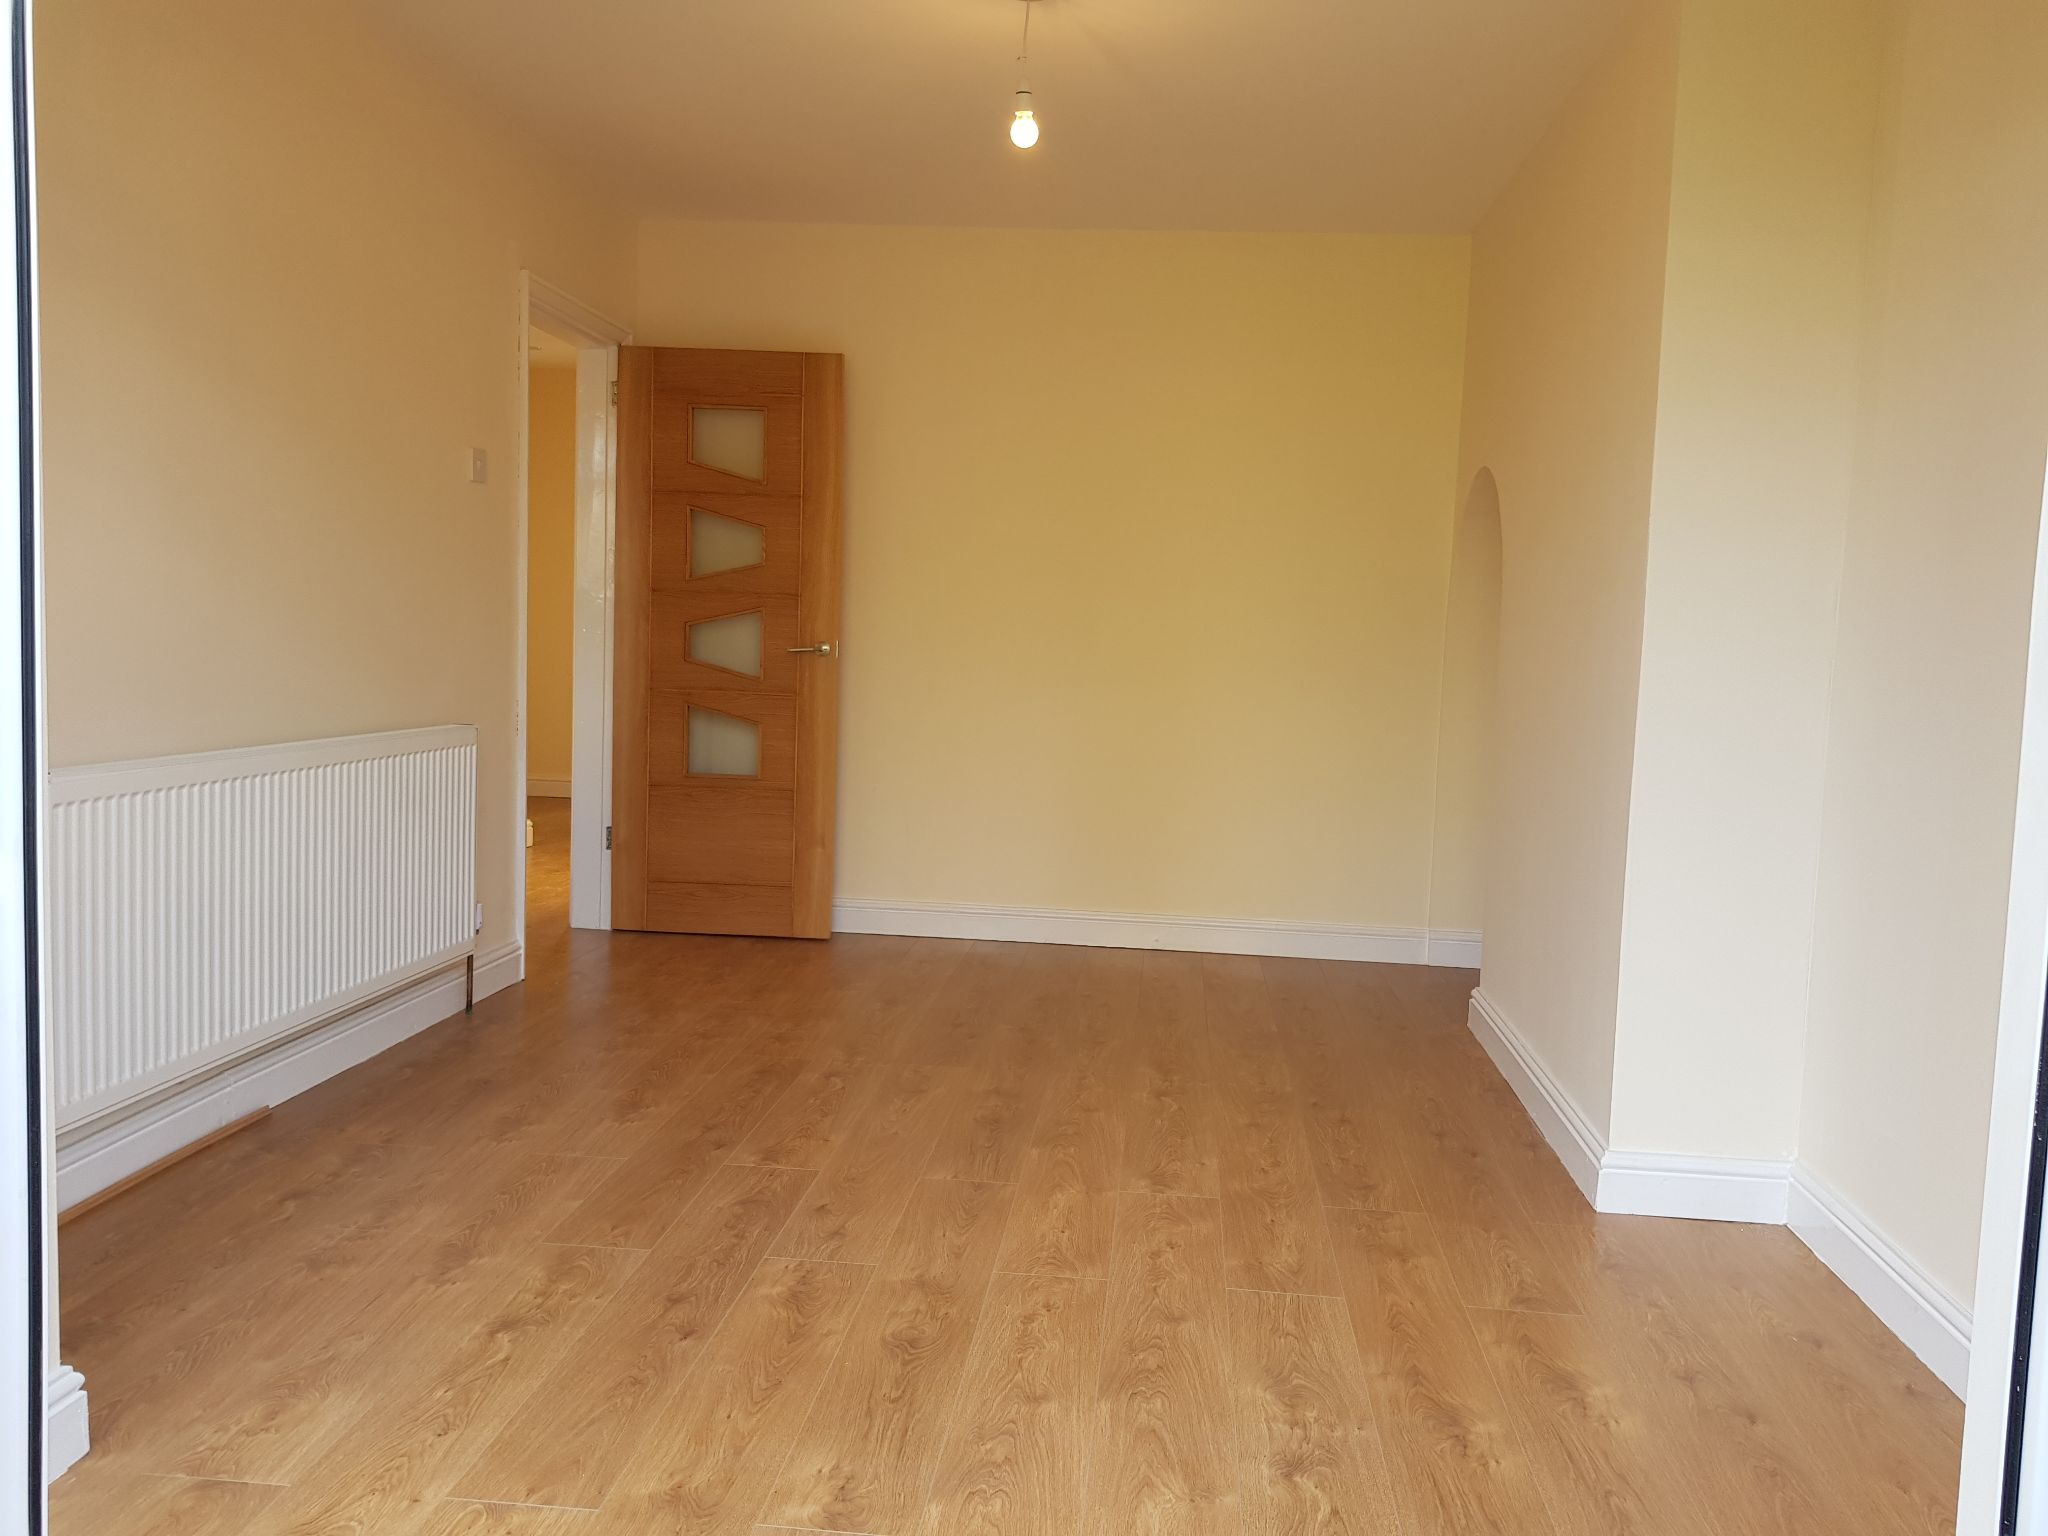 3 Bedroom Semi-detached House For Sale - Rear Reception Room